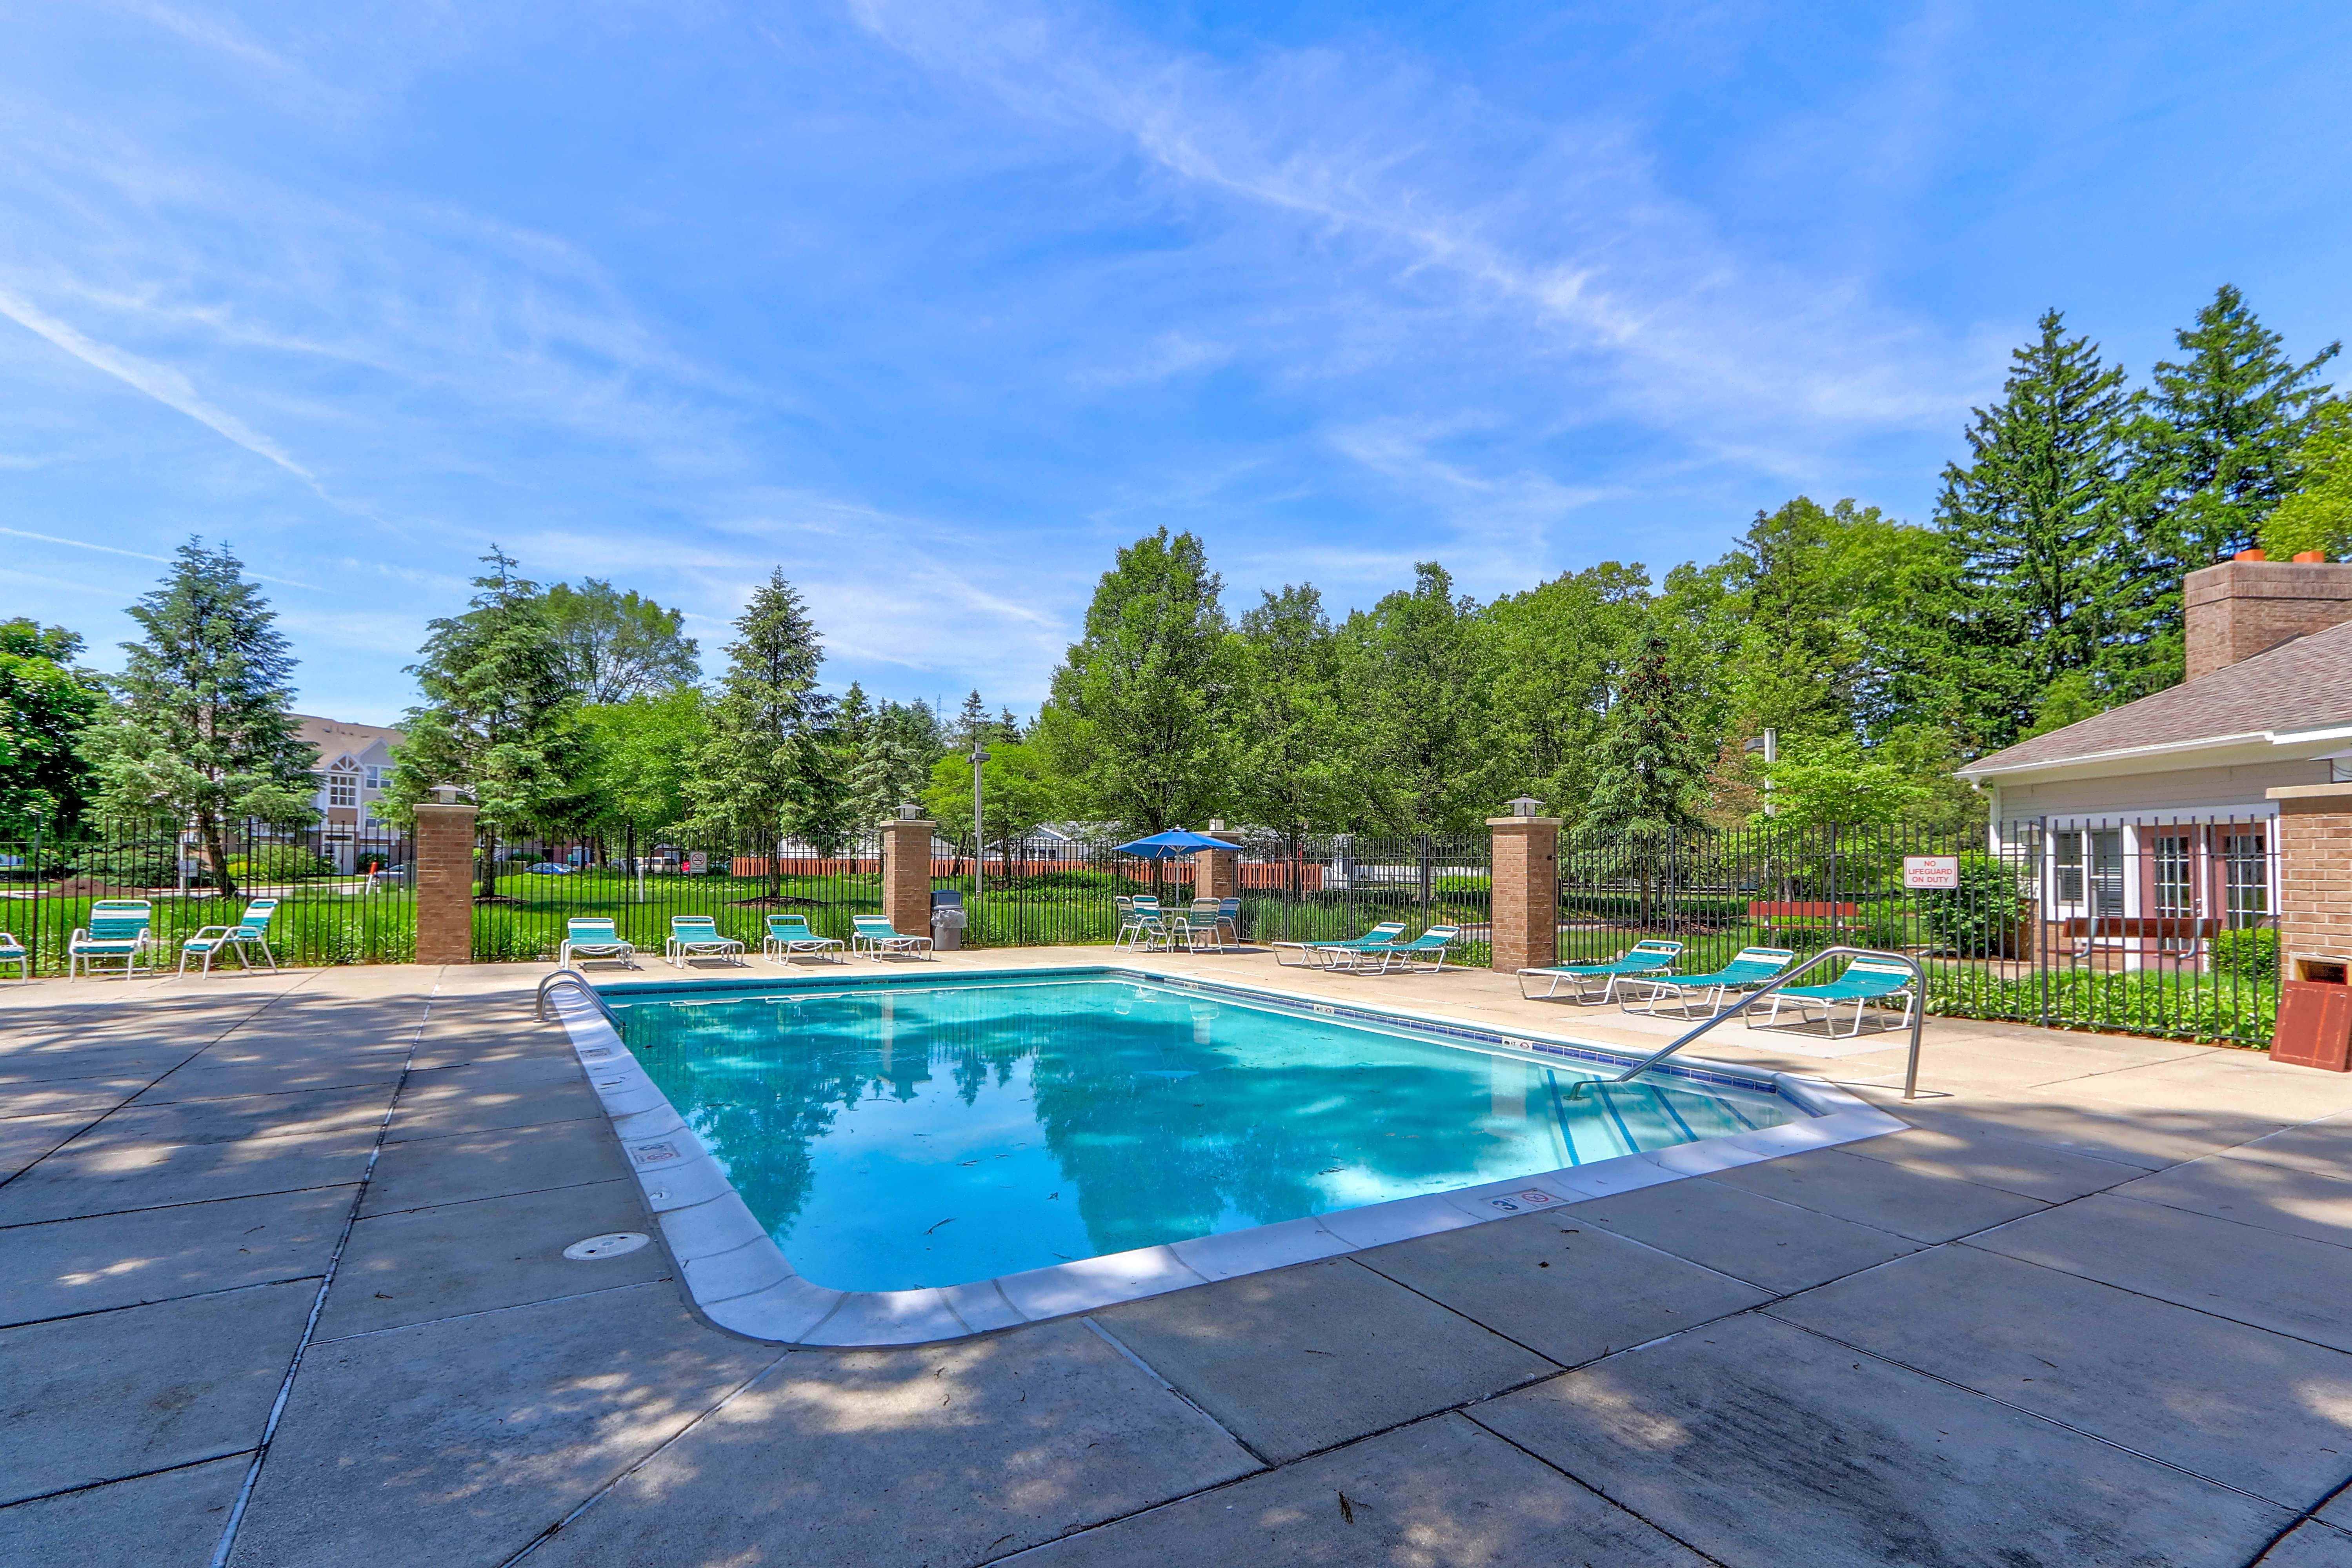 Apartments Near Lourdes Orchard Lakes for Lourdes College Students in Sylvania, OH